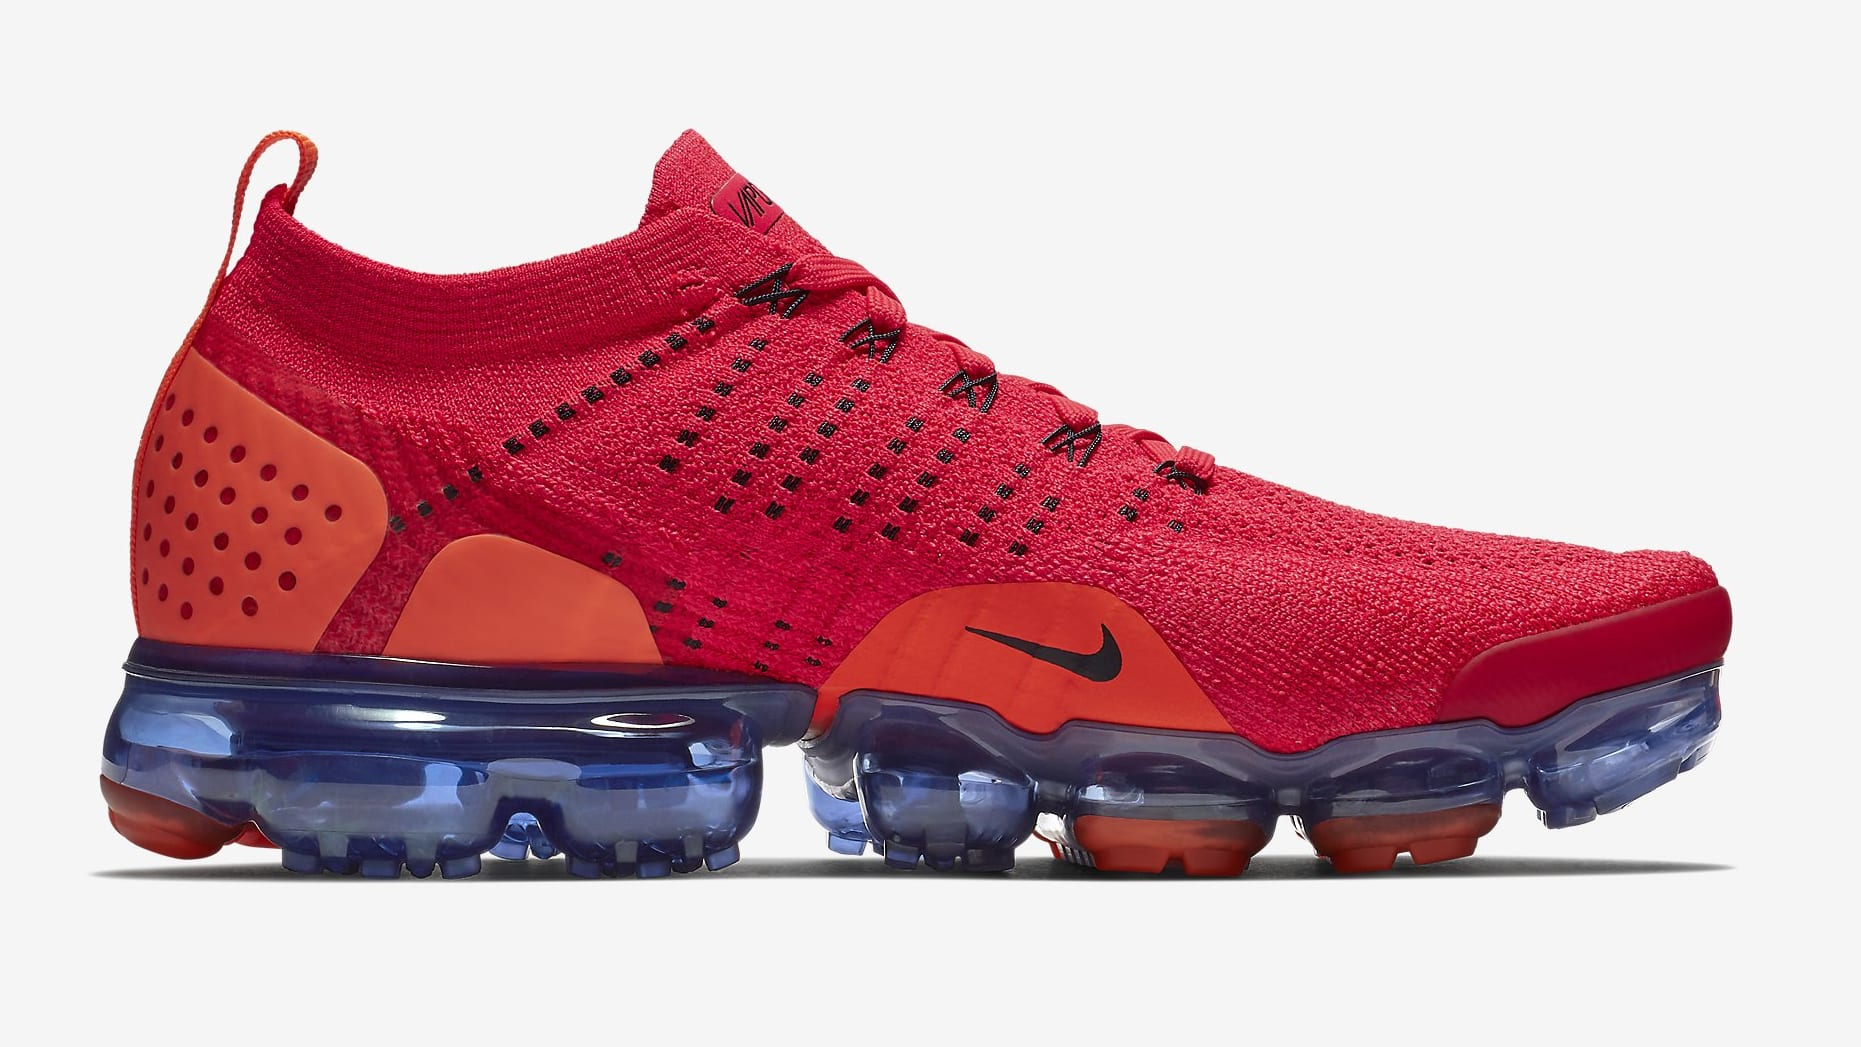 info for 7ca66 3a96f ... clearance image via nike nike air vapormax 2 flyknit red orbit ar5406  640f0 434a4